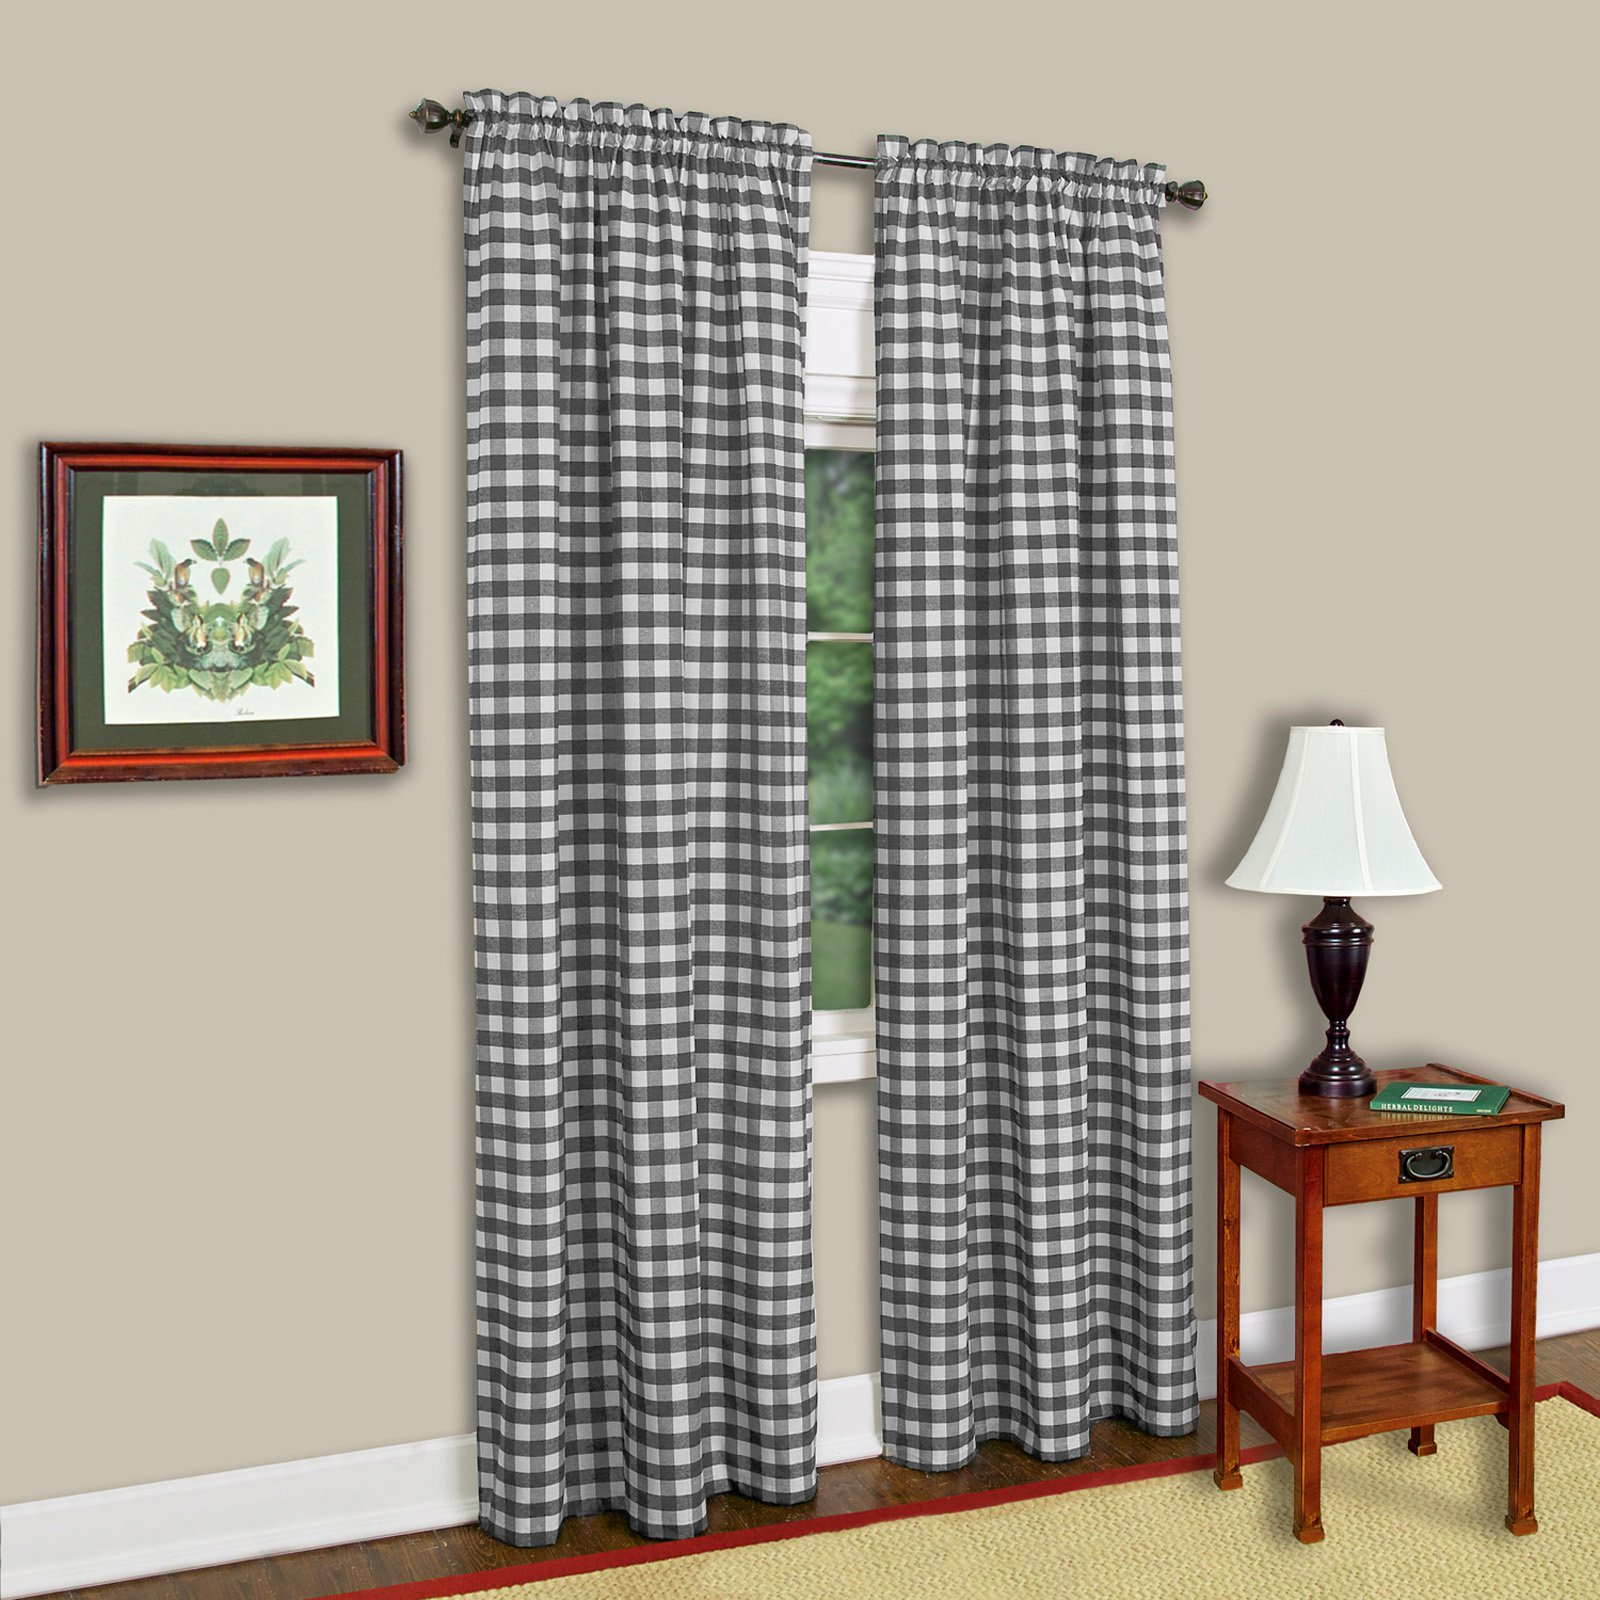 Black and white checked curtains - Buffalo Checkered Curtain Panel Available In Multiple Sizes And Colors Walmart Com